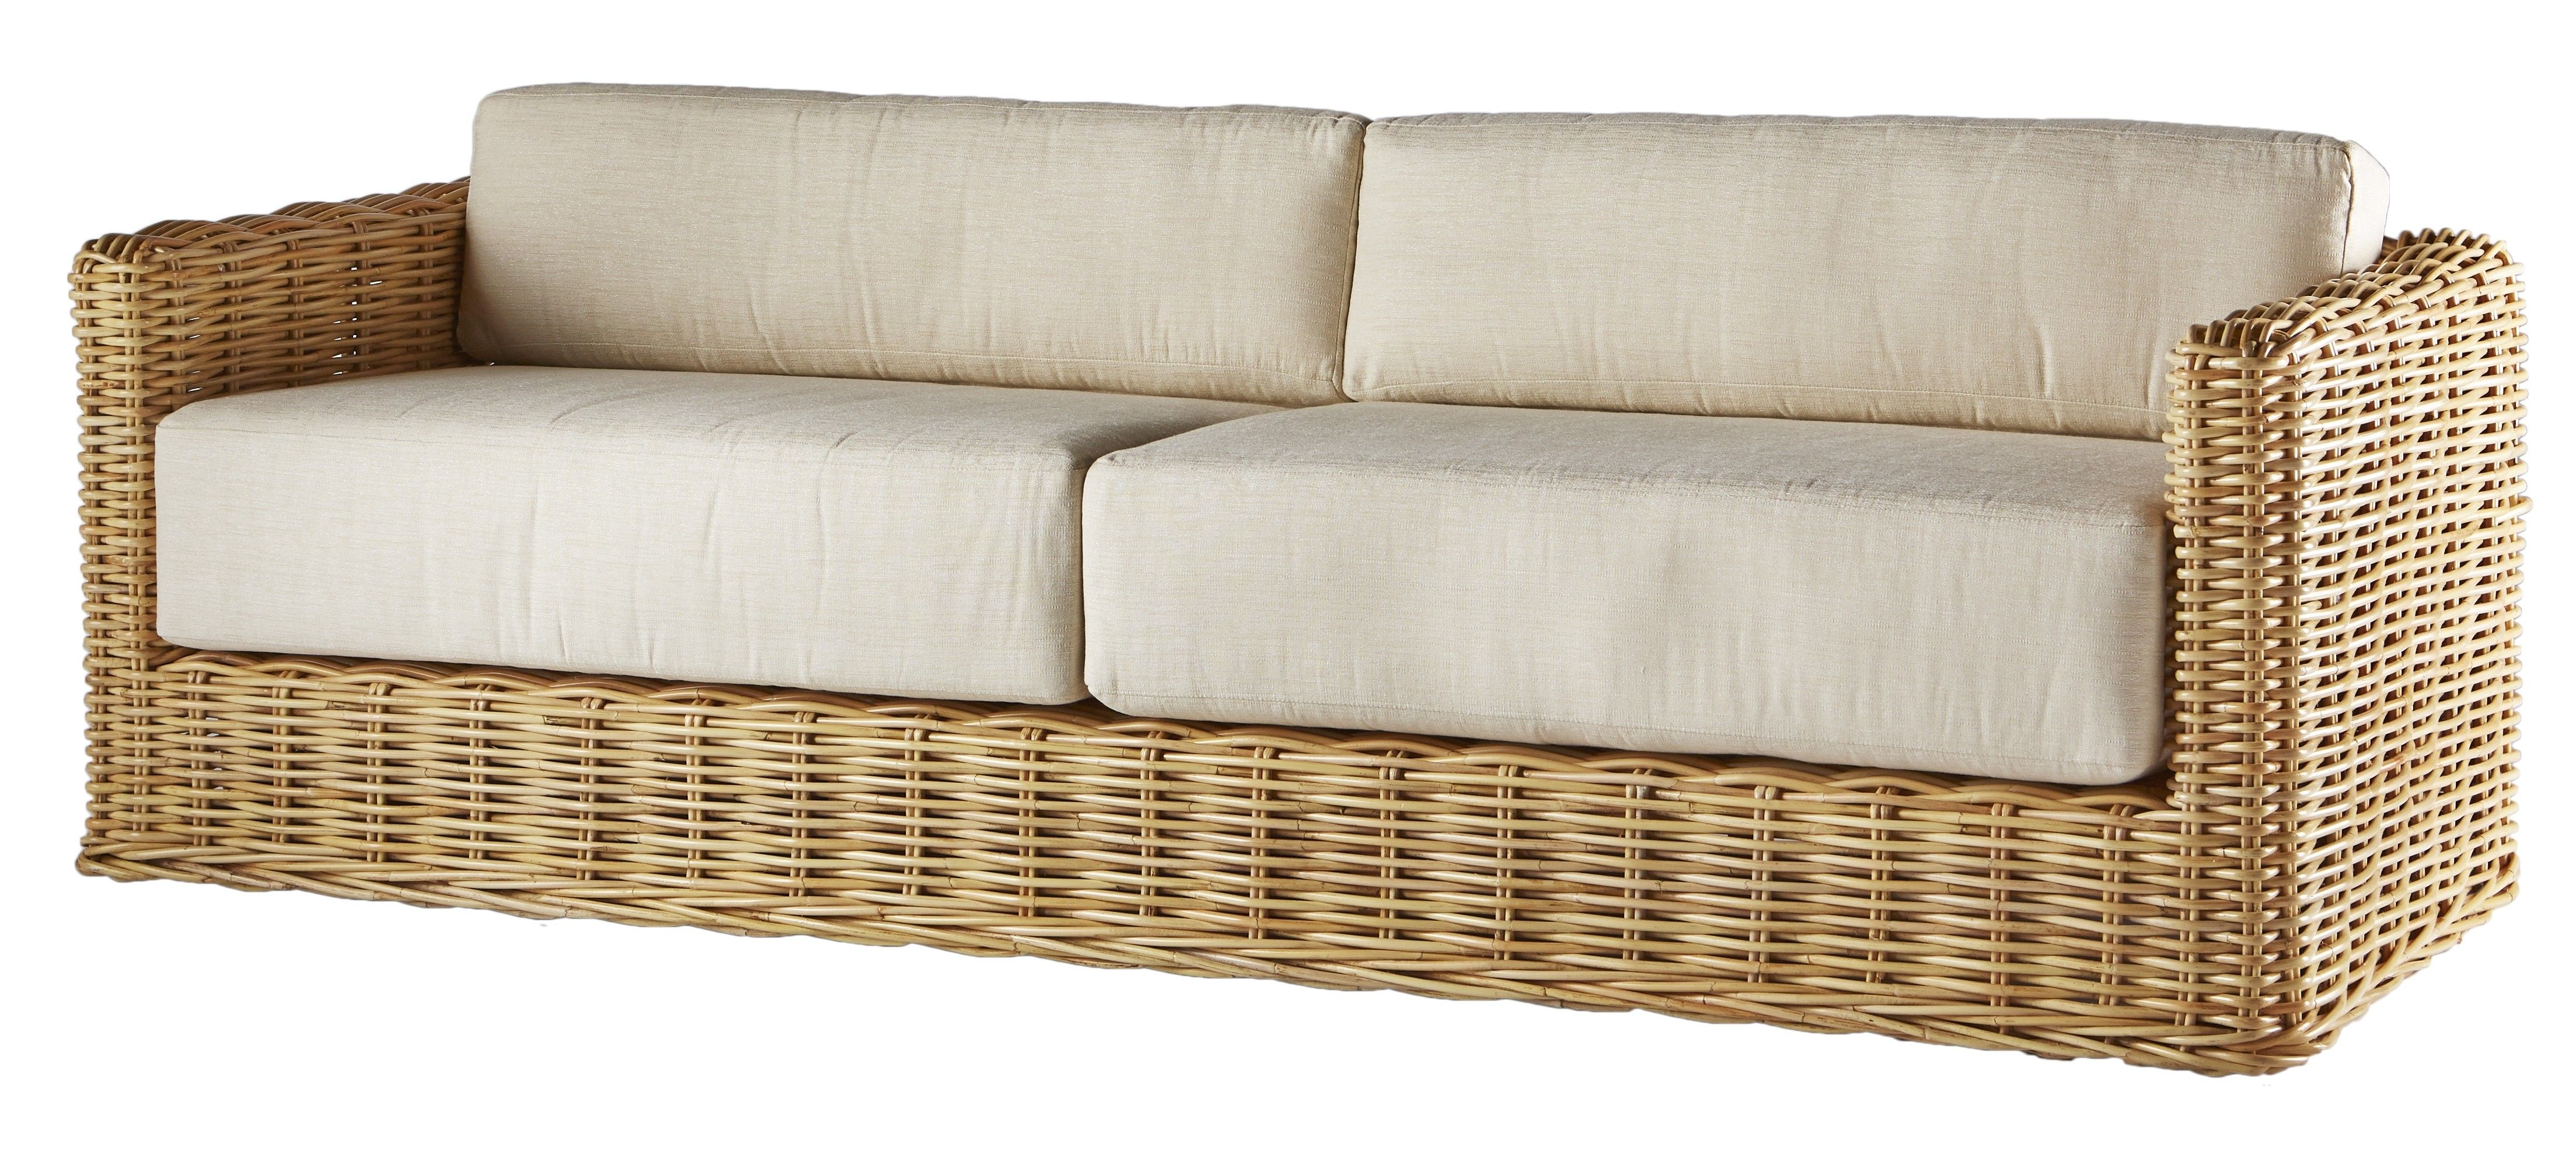 A Modern Squared Design Keeps This Rattan Sofa Fresh And Cool We